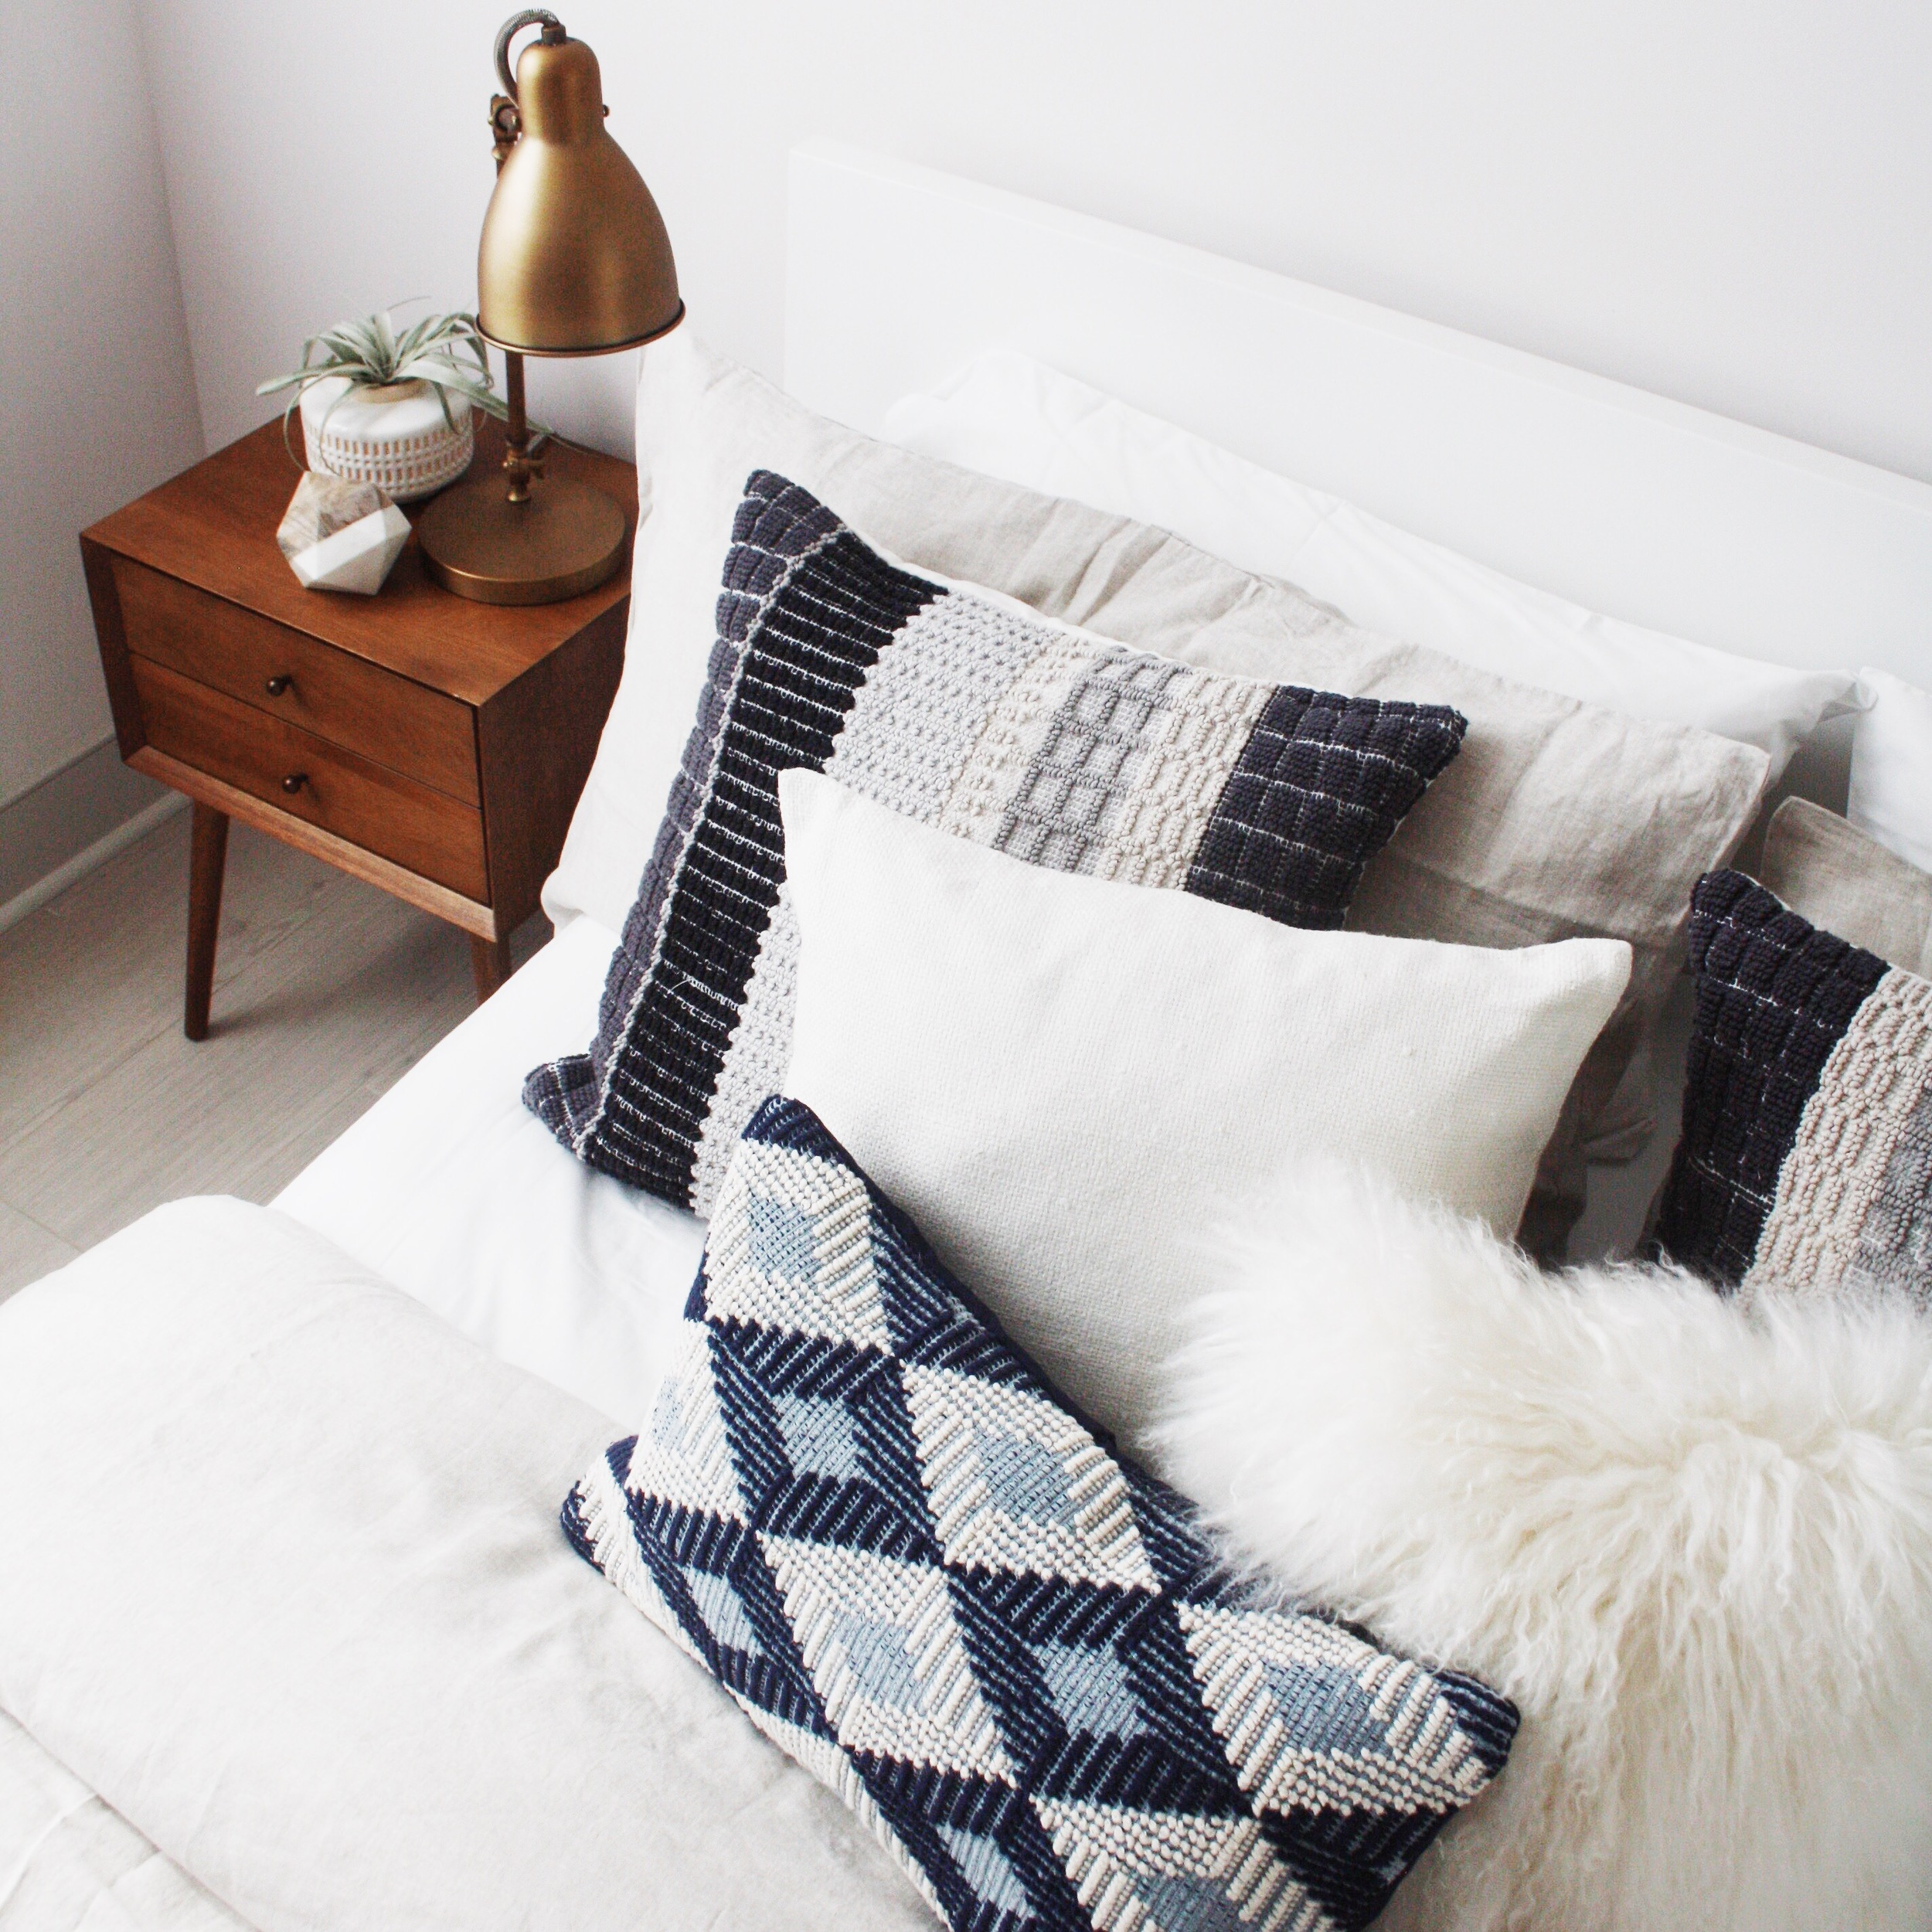 west elm bed styling - the habitat collective - www.thehabco.com